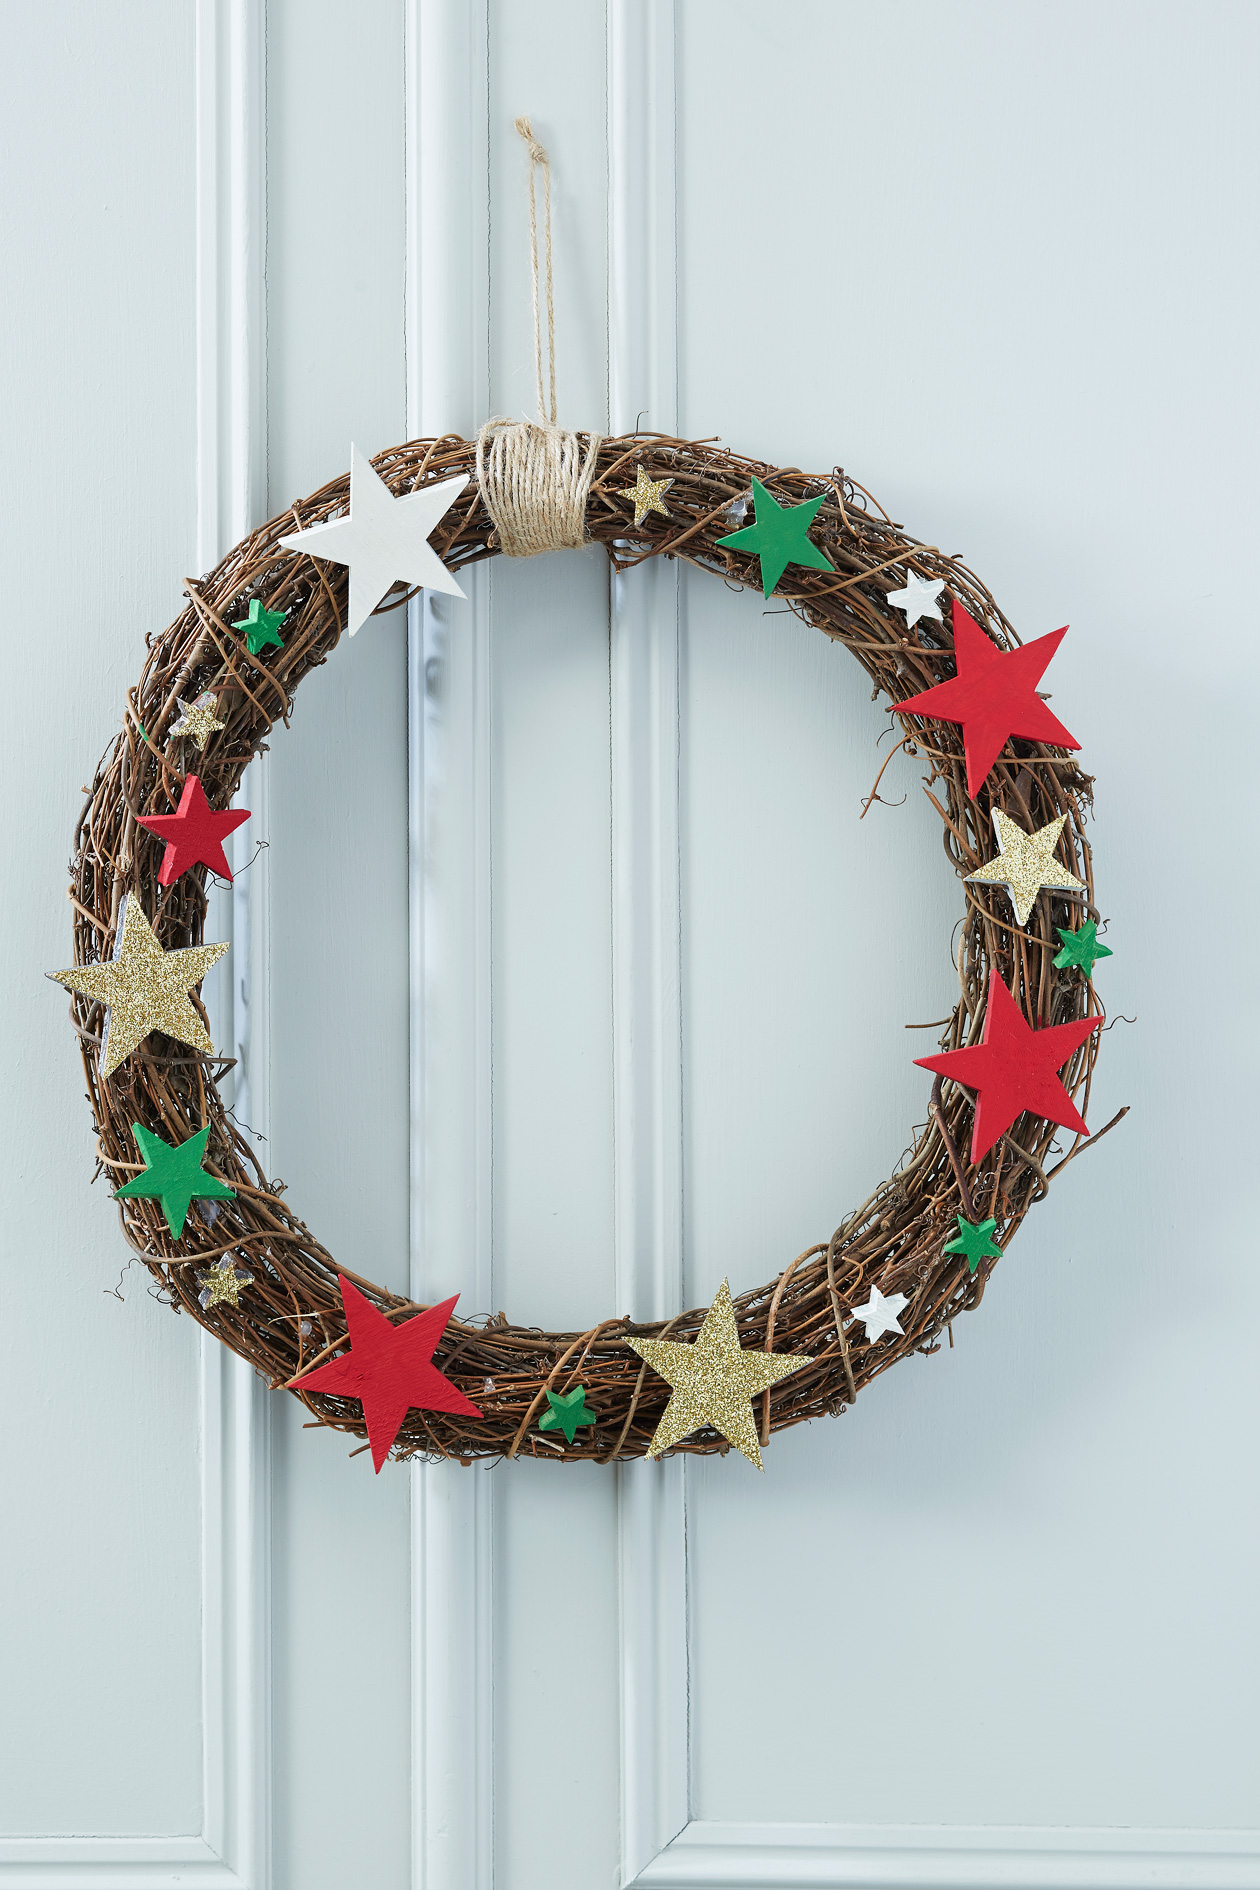 Make your own decorations..start with a plain natural rattan wreath from Hobby Craft, £3